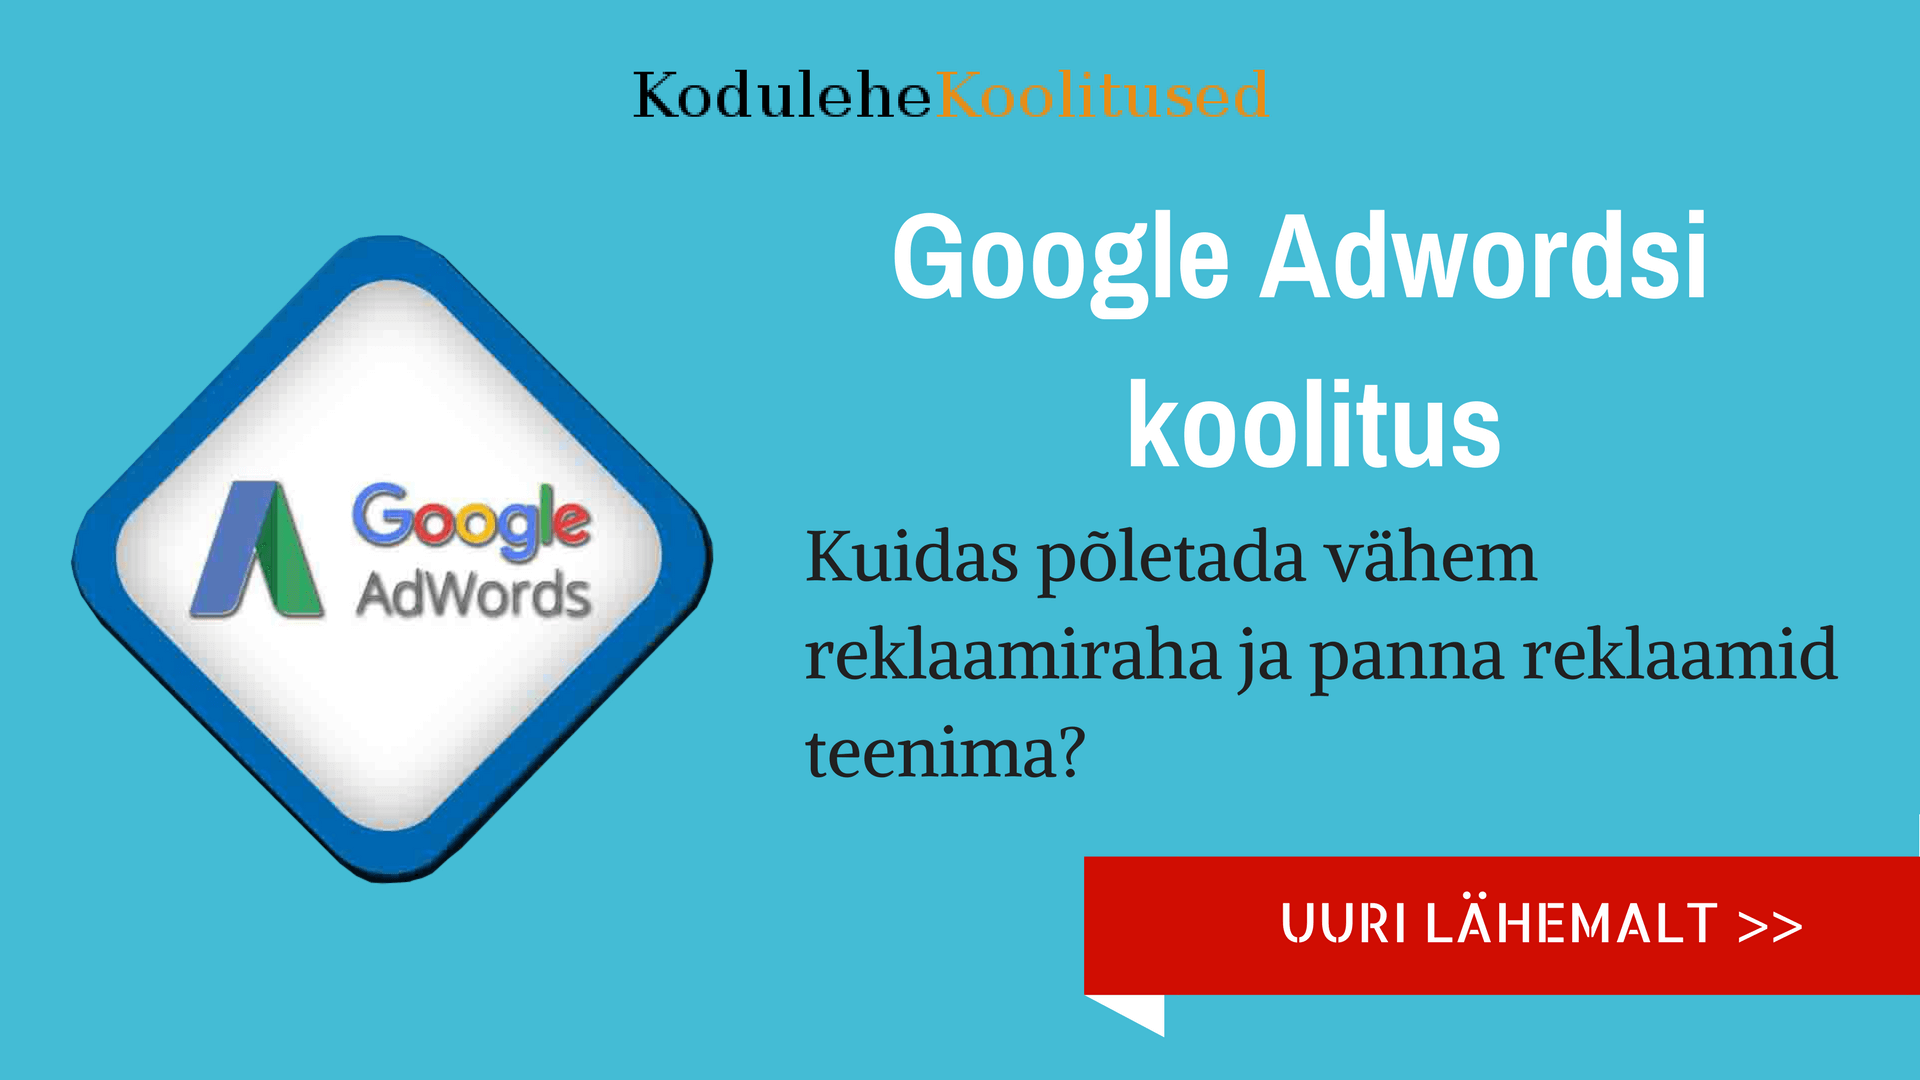 Adwords koolitus